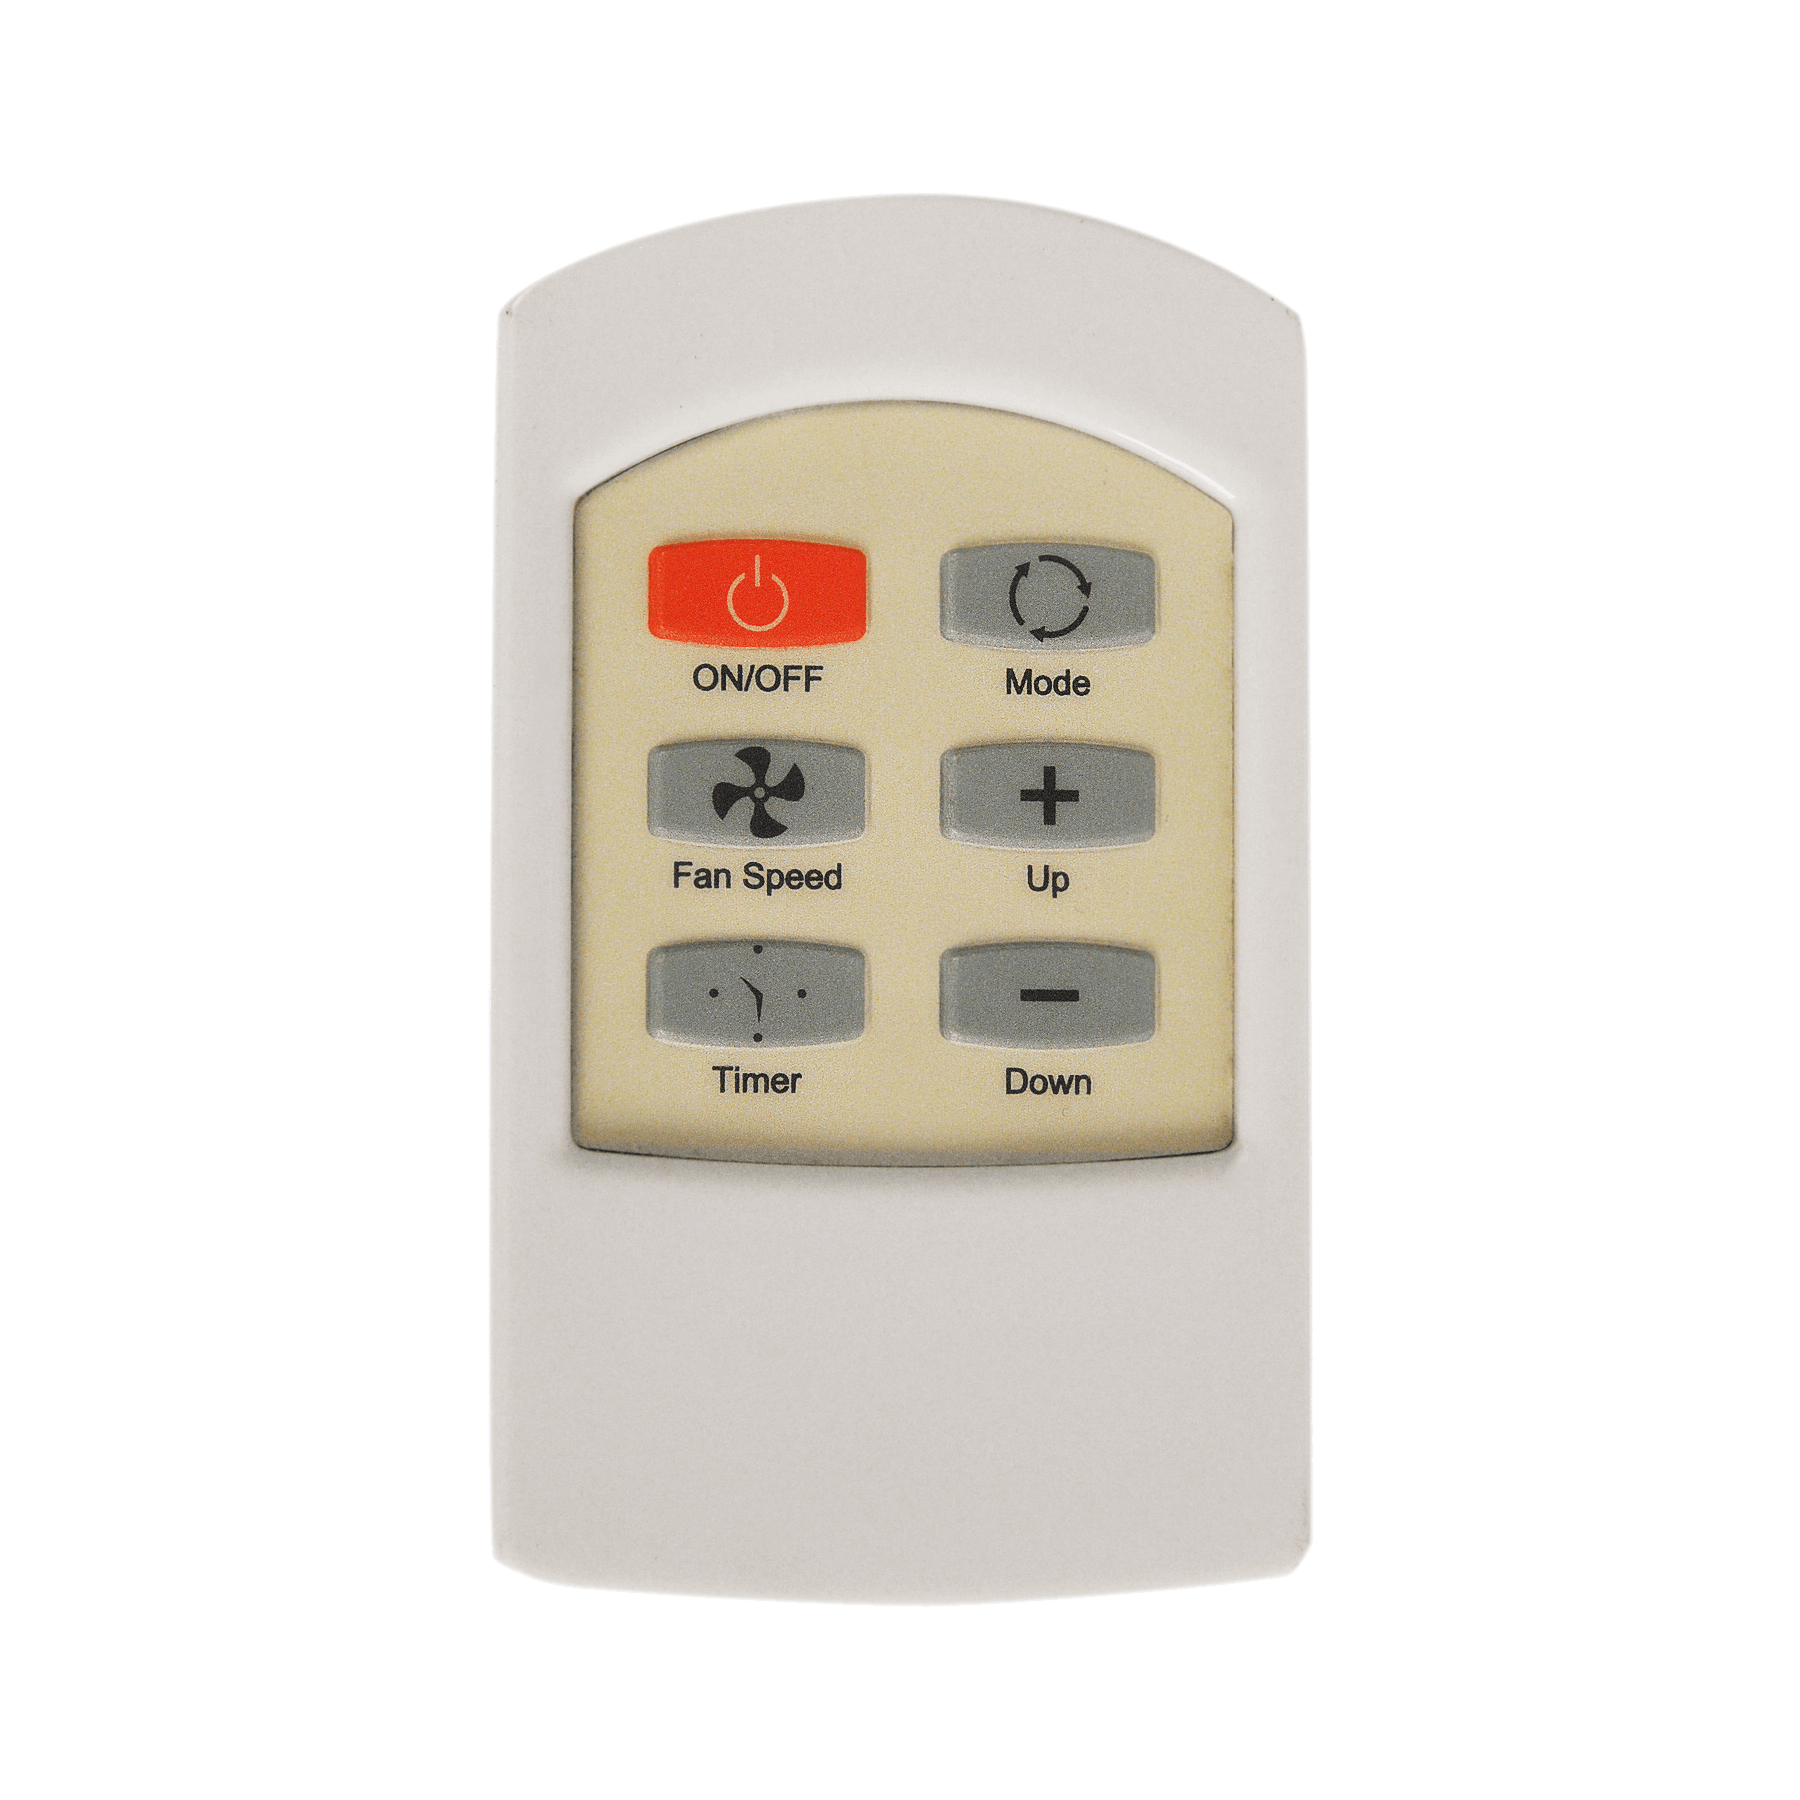 Honeywell Remote Control for MF Series Portable ACs ho3868